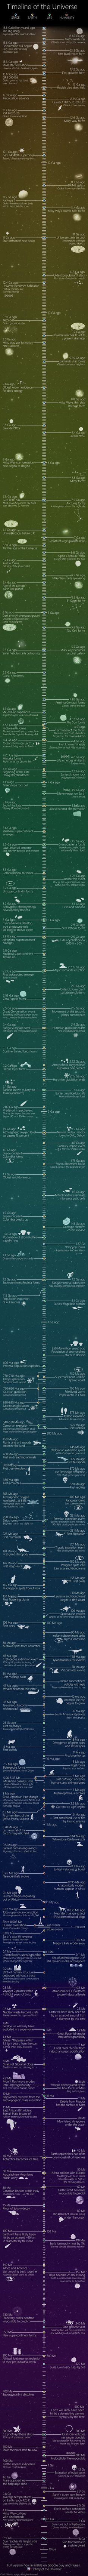 Designed by Martin Vargic, the Timeline of the Universe allows viewers to traverse billions of years of time and explore significant astronomical events... from the Big Bang all the way to the death of our planet and, ultimately, our solar system. The full version, available within an app, extends the journey to the heat death of the universe. Note that…